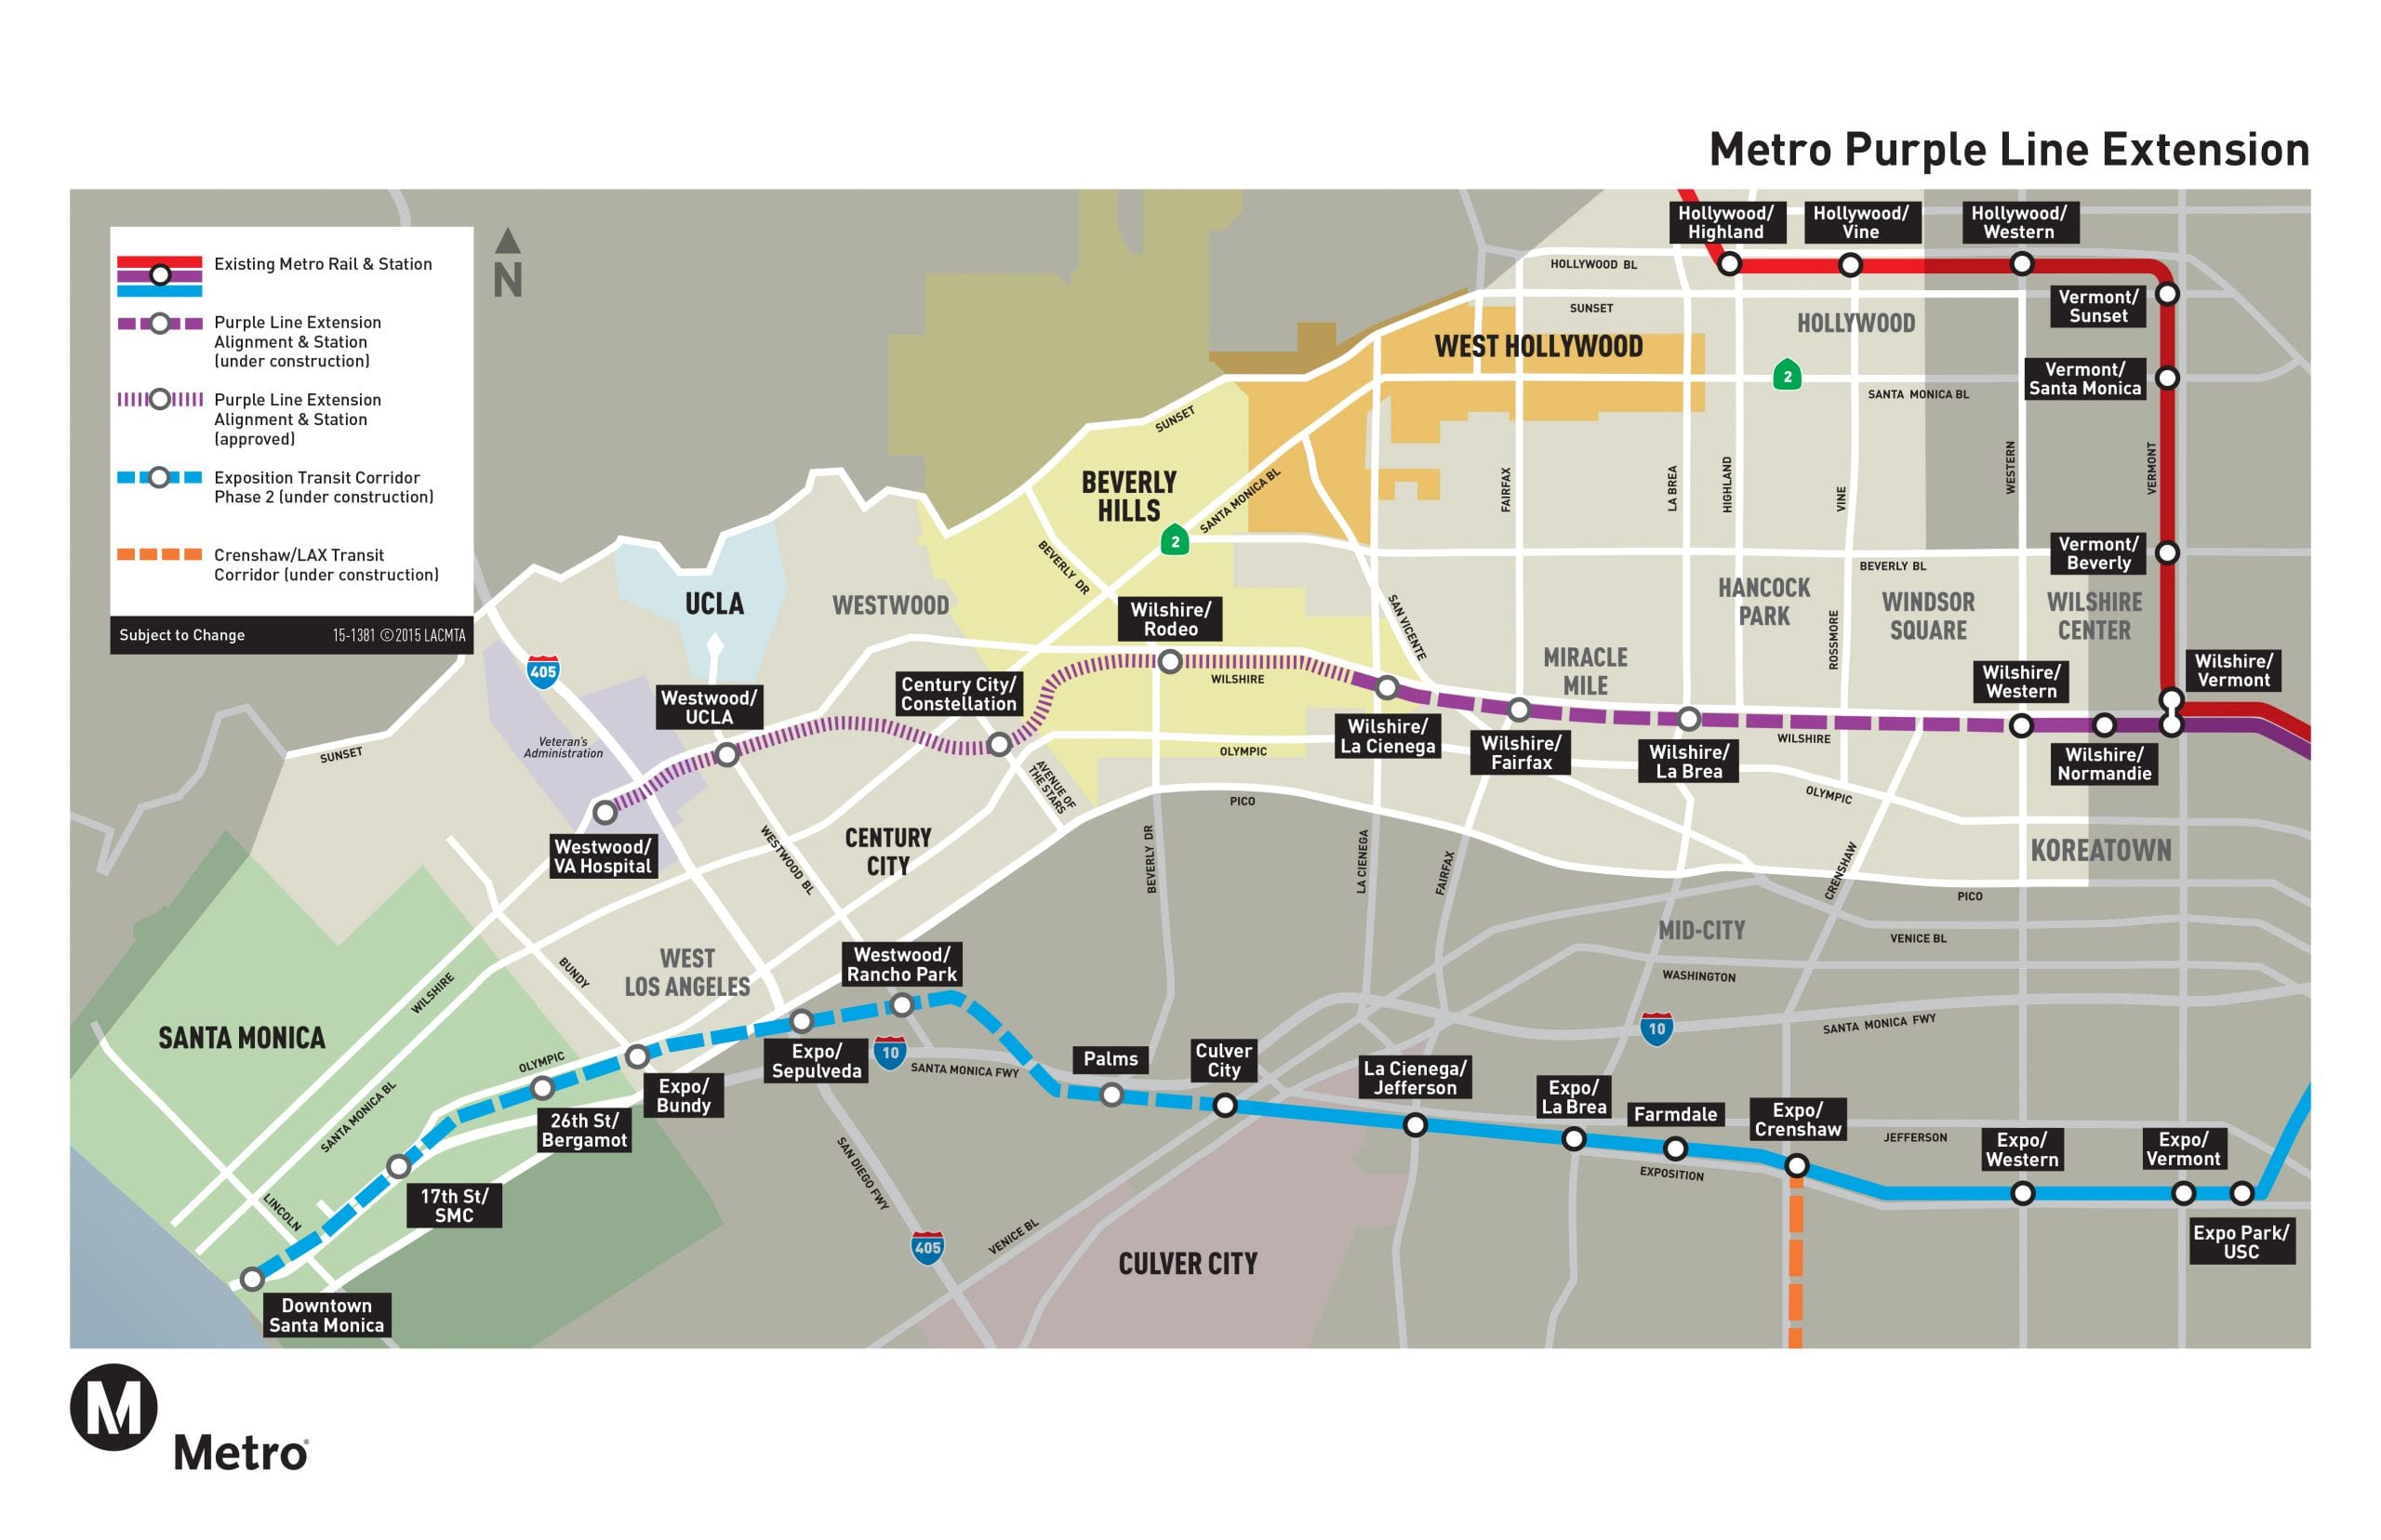 15-1381_map_Project_PurpleExt_v1.indd